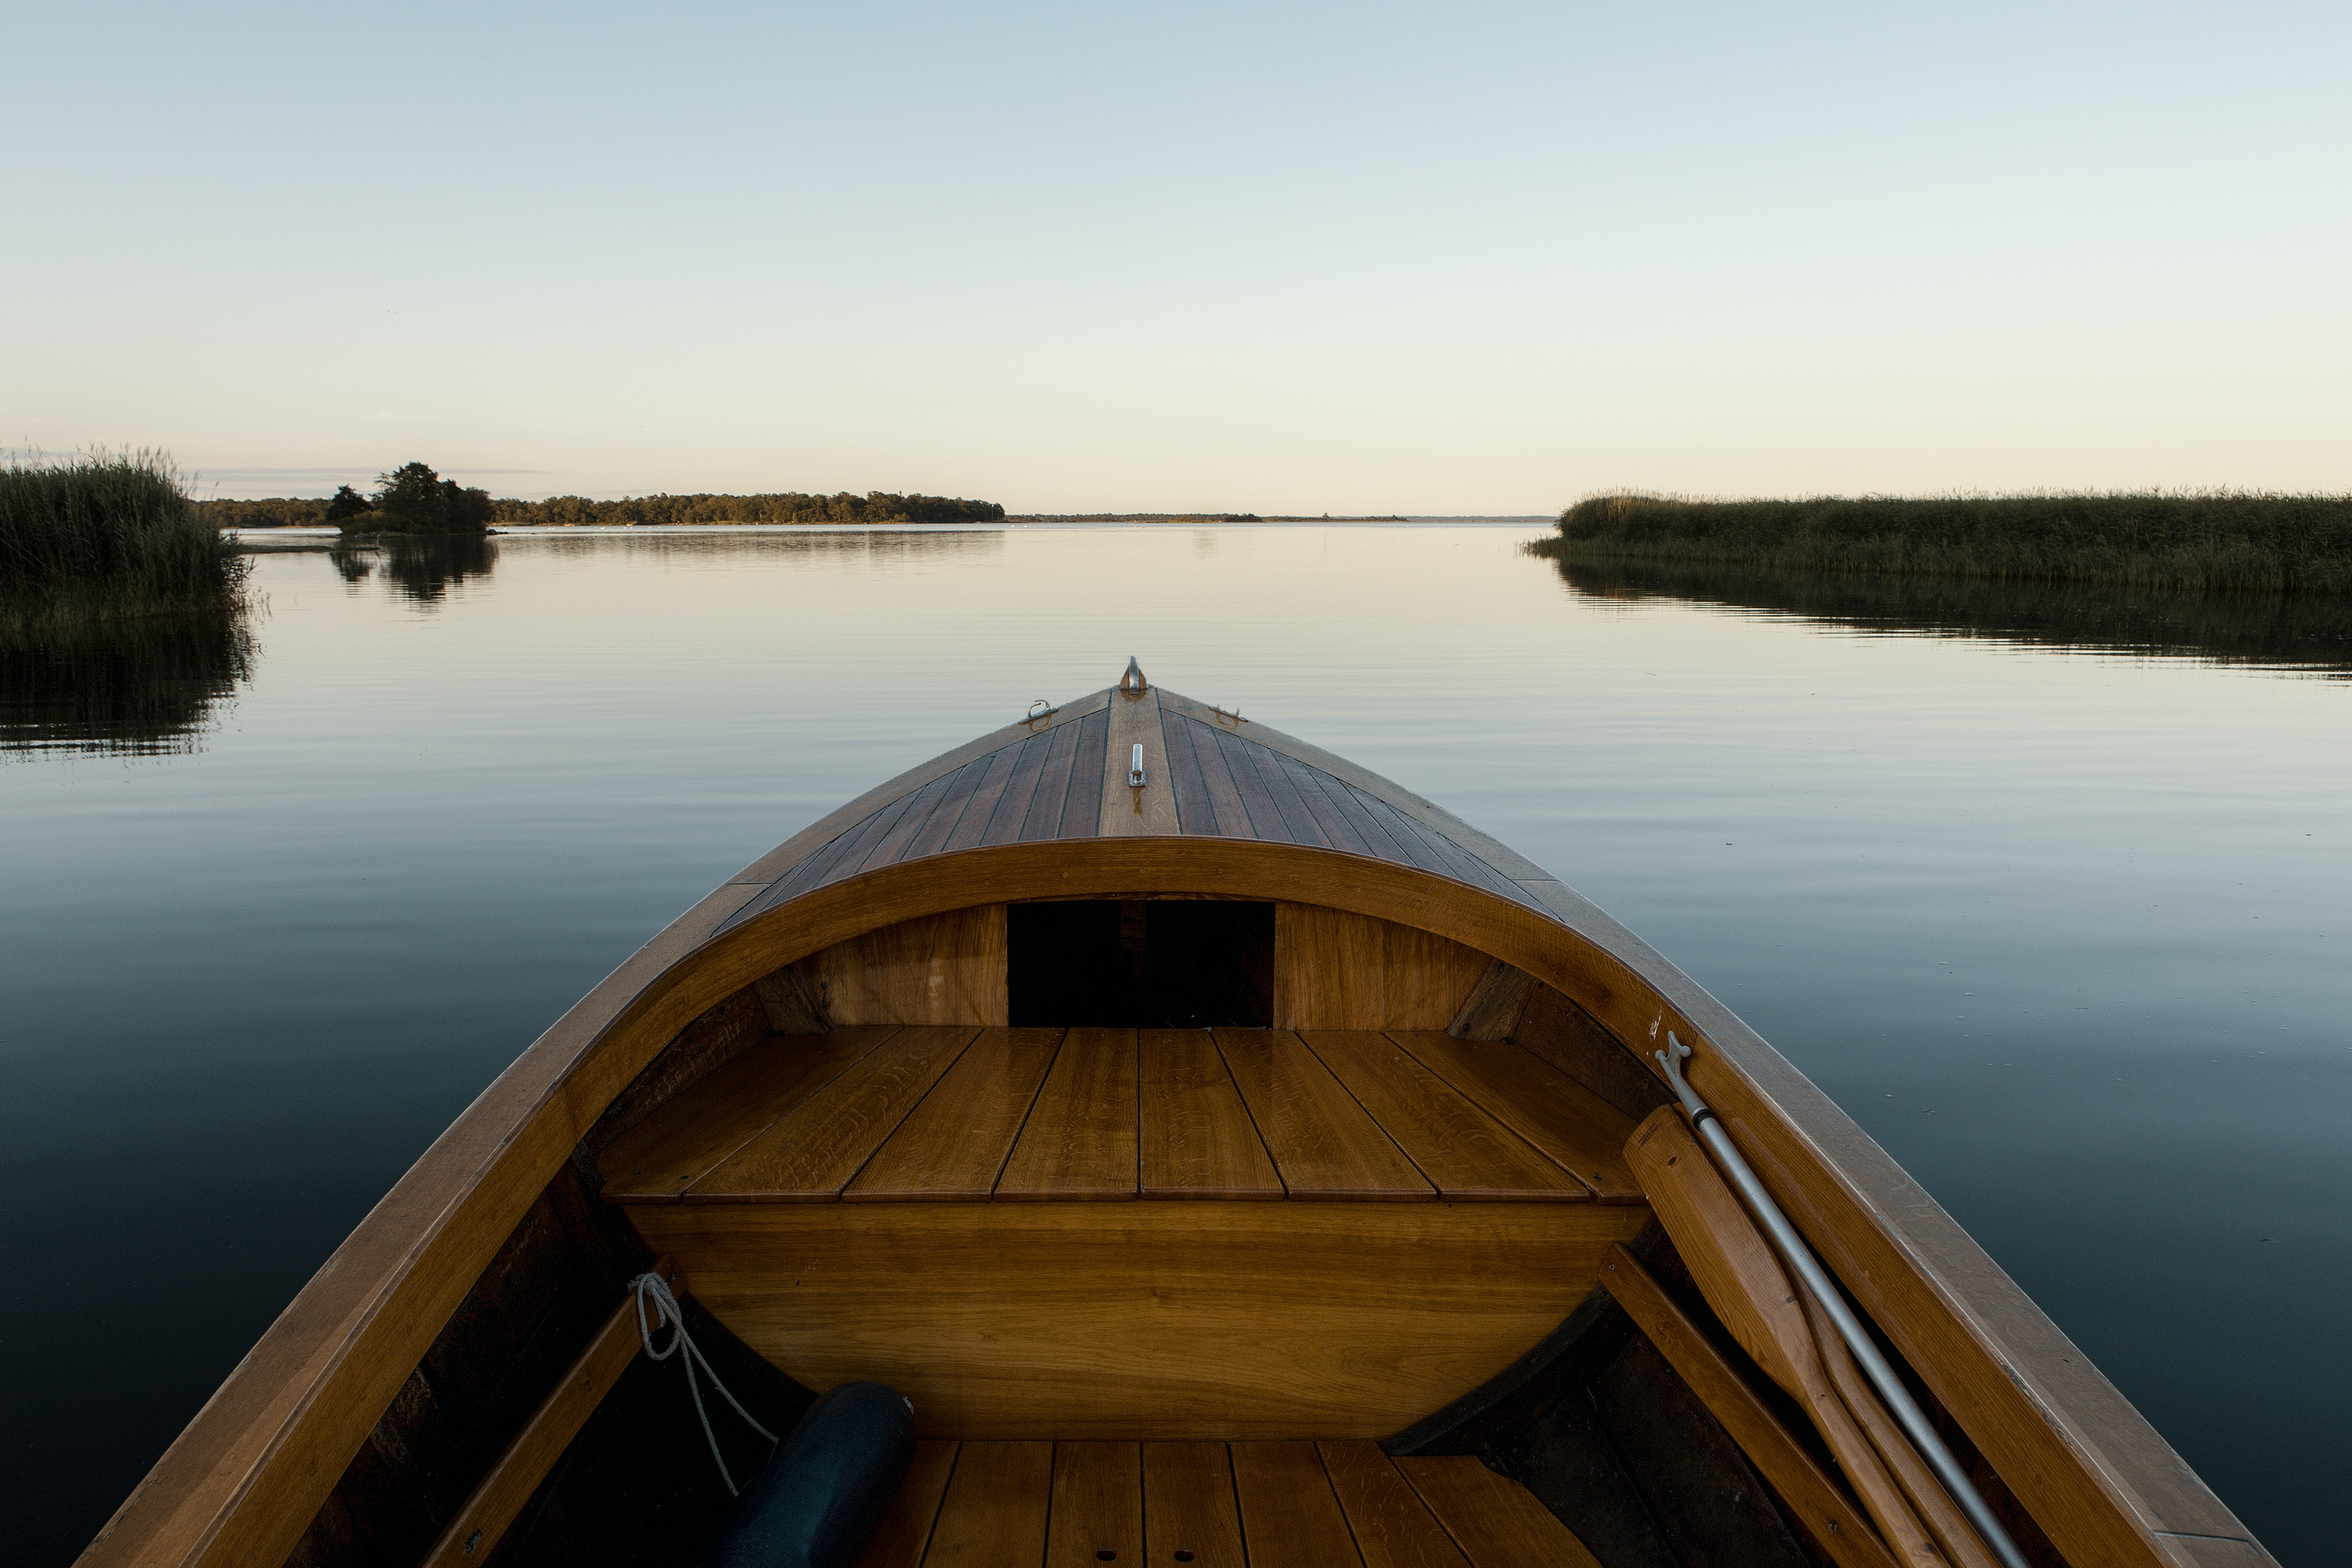 landscape photography of brown boat surrounded by body of water during daytime